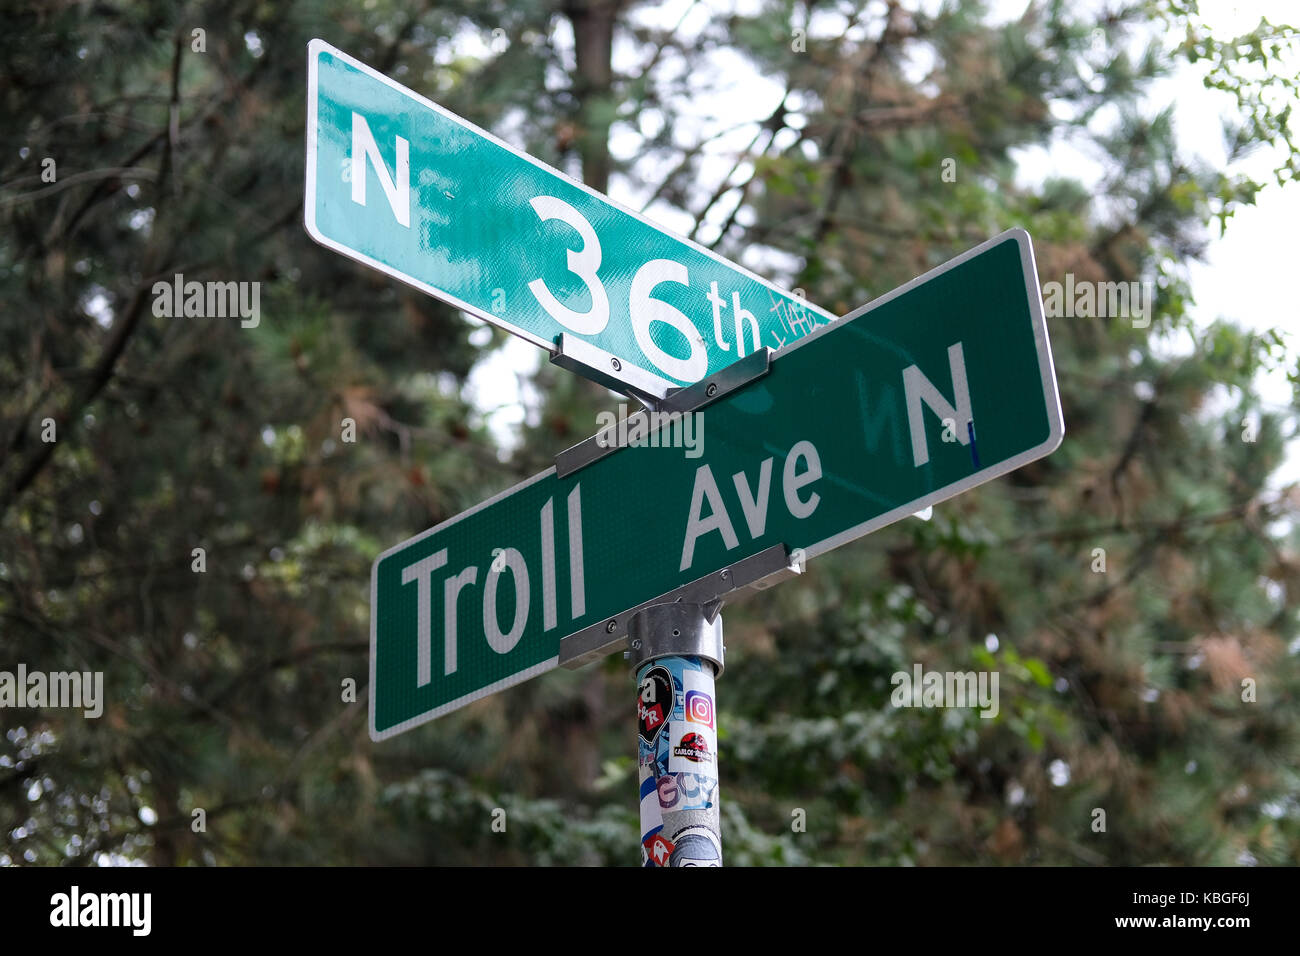 Troll Ave N, where the Fremont Troll is situated in the Fremont area of Seattle, Washington, USA. - Stock Image